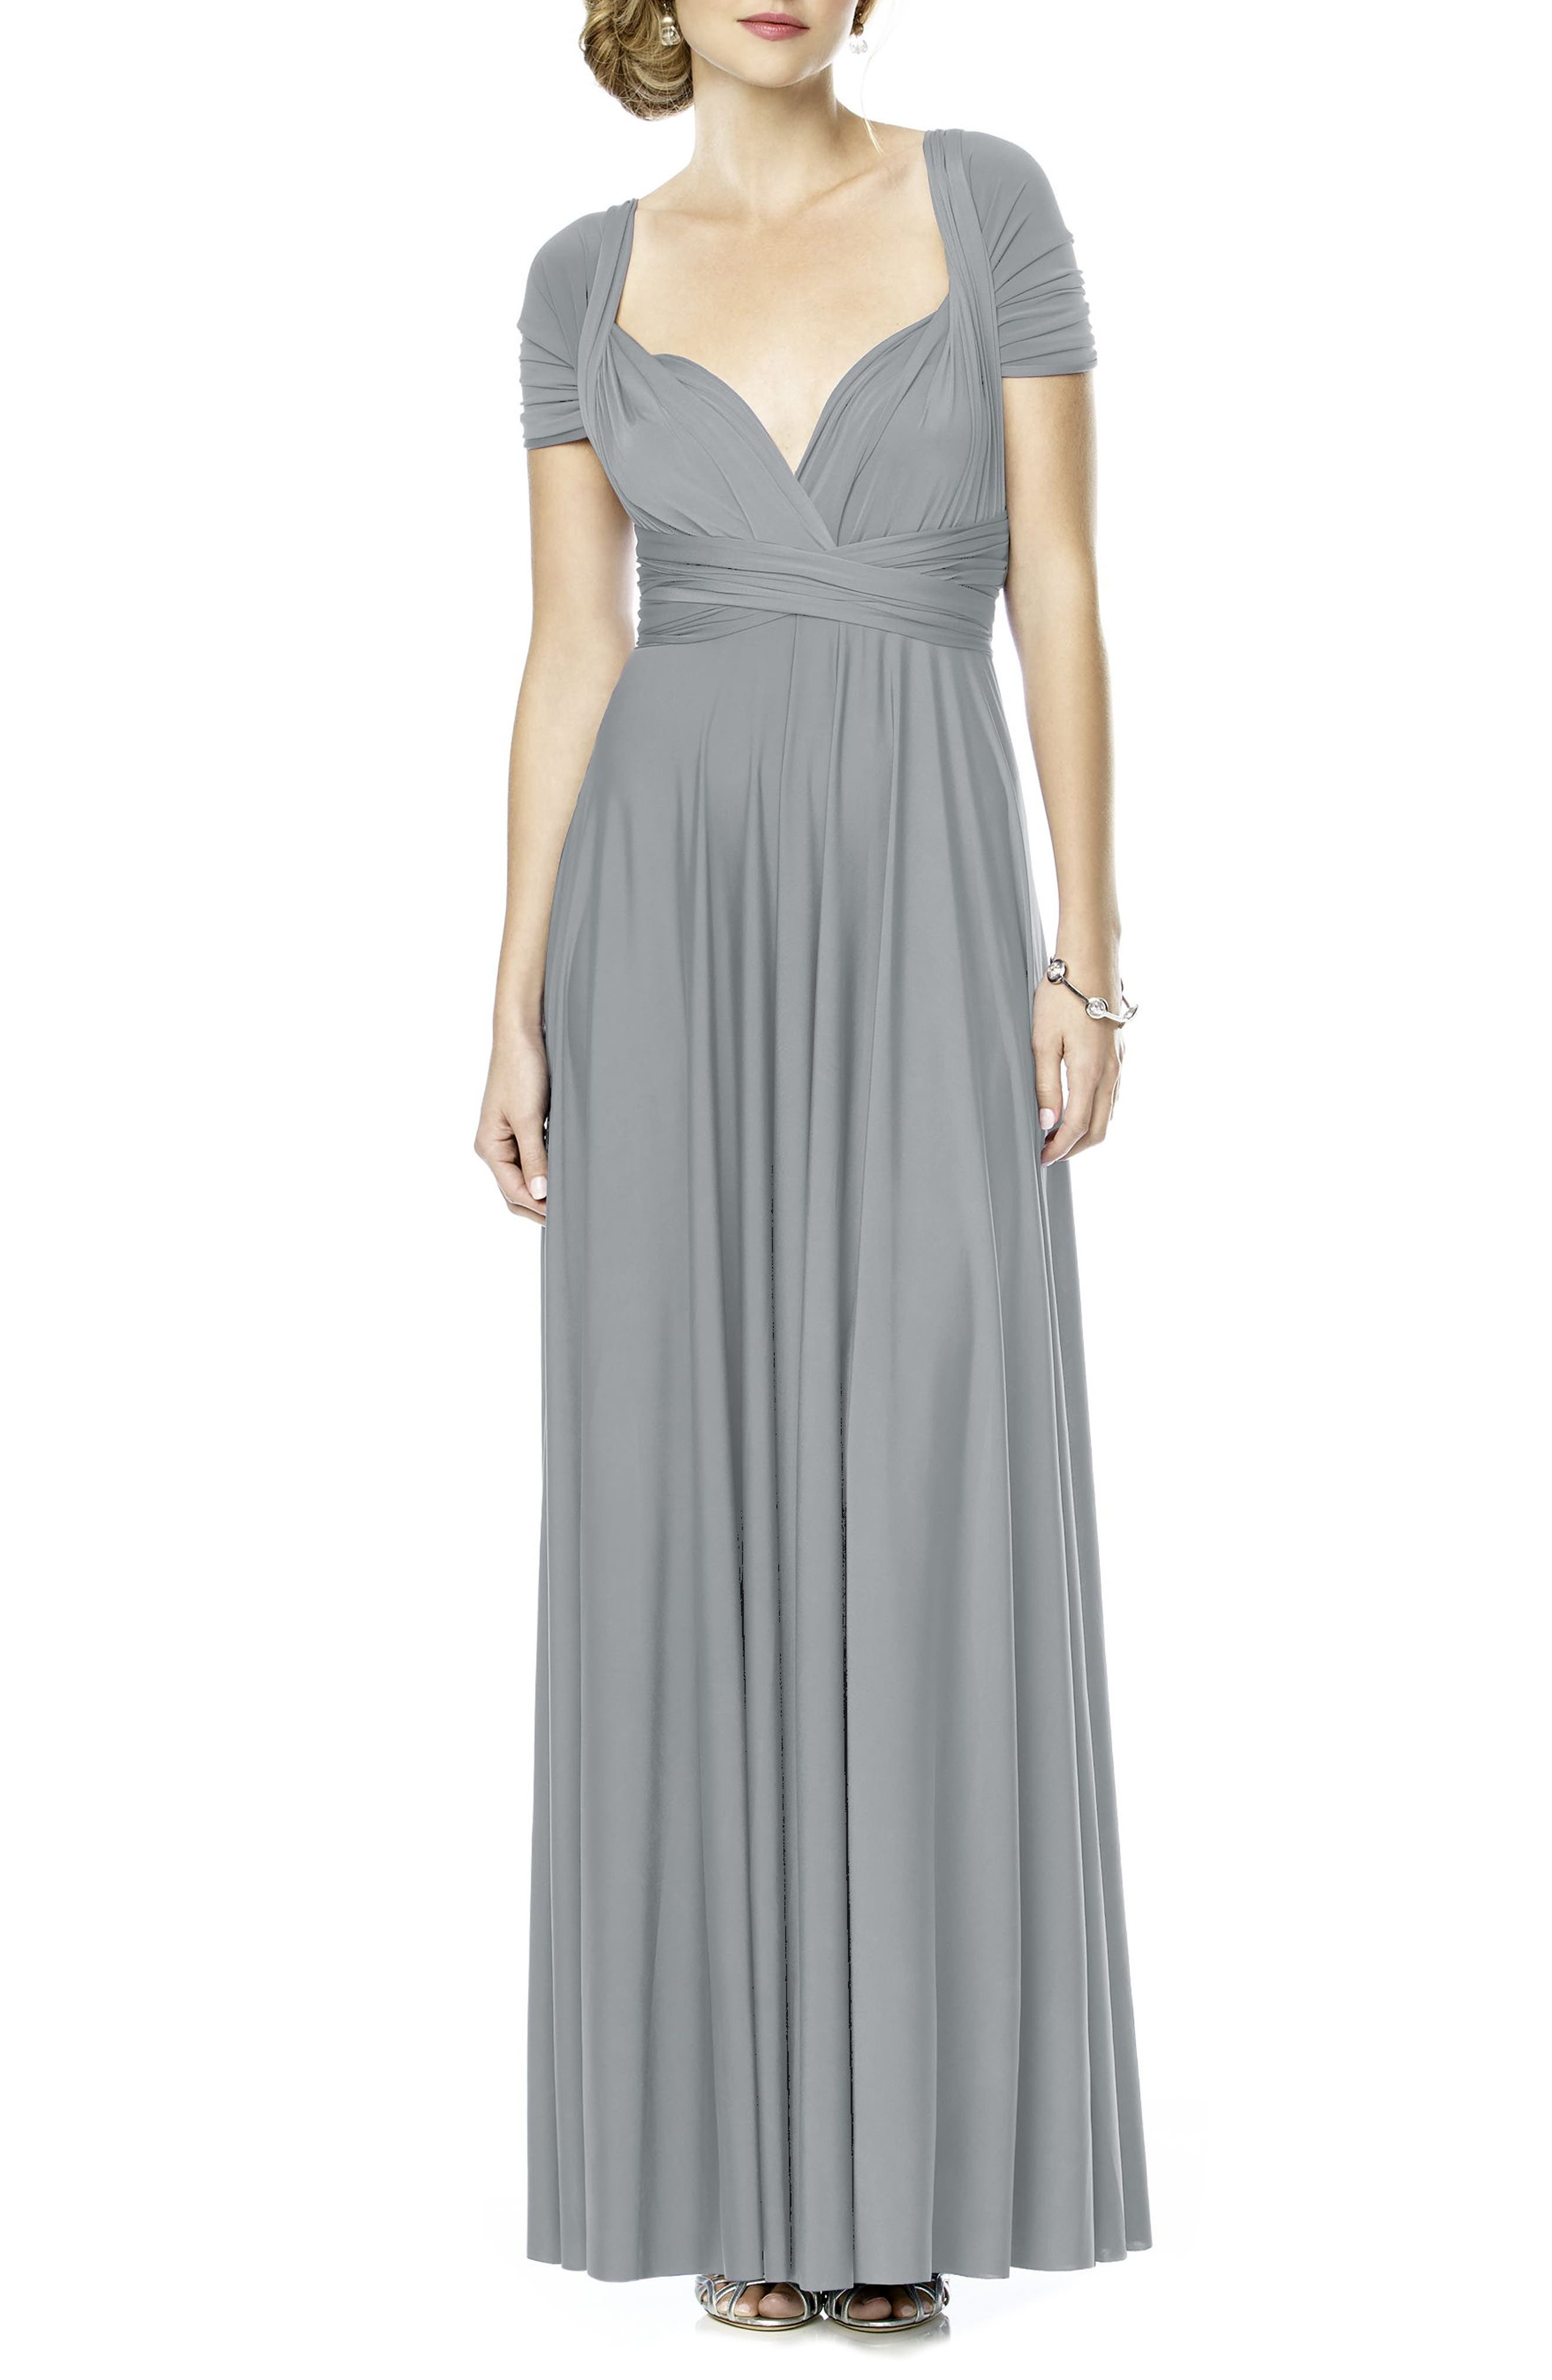 DESSY COLLECTION,                             Convertible Wrap Tie Surplice Jersey Gown,                             Main thumbnail 1, color,                             033